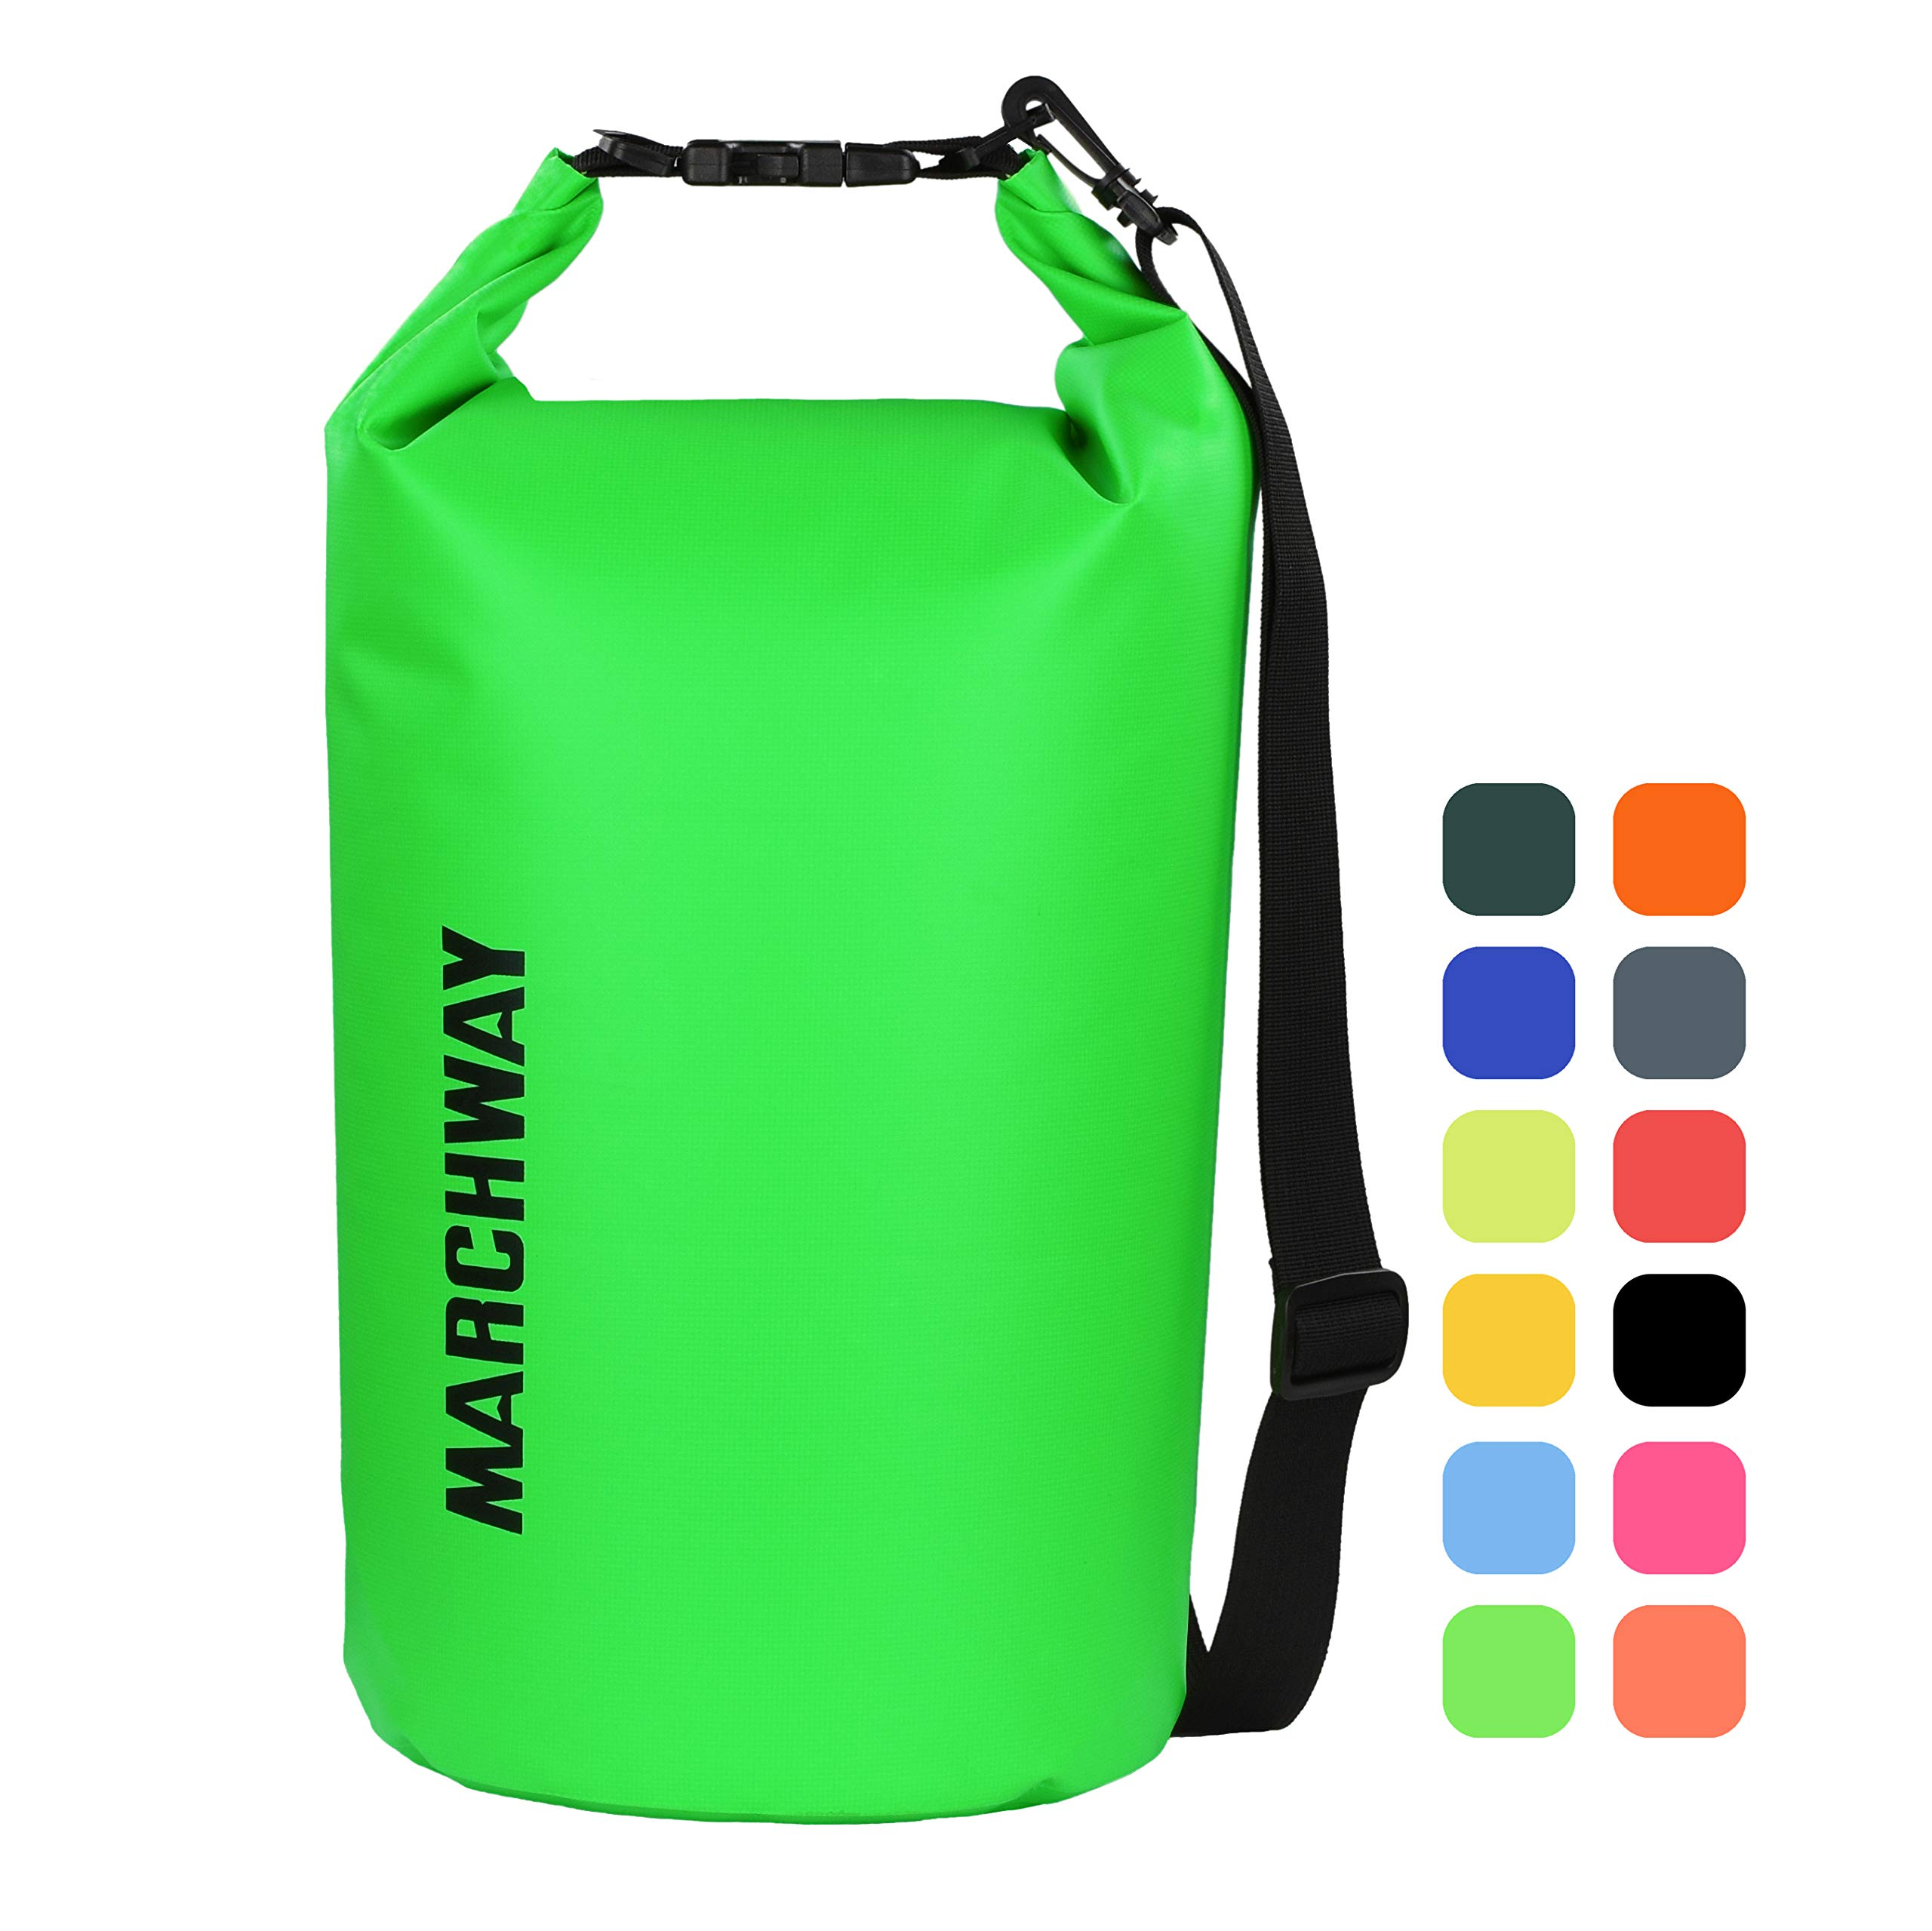 Floating Waterproof Dry Bag 5L/10L/20L/30L/40L, Roll Top Dry Sack for Marine Kayaking Rafting Boating Swimming Camping Hiking Beach Fishing Skiing Snowboarding Hunting Climbing Surfing (Green, 20L) by MARCHWAY